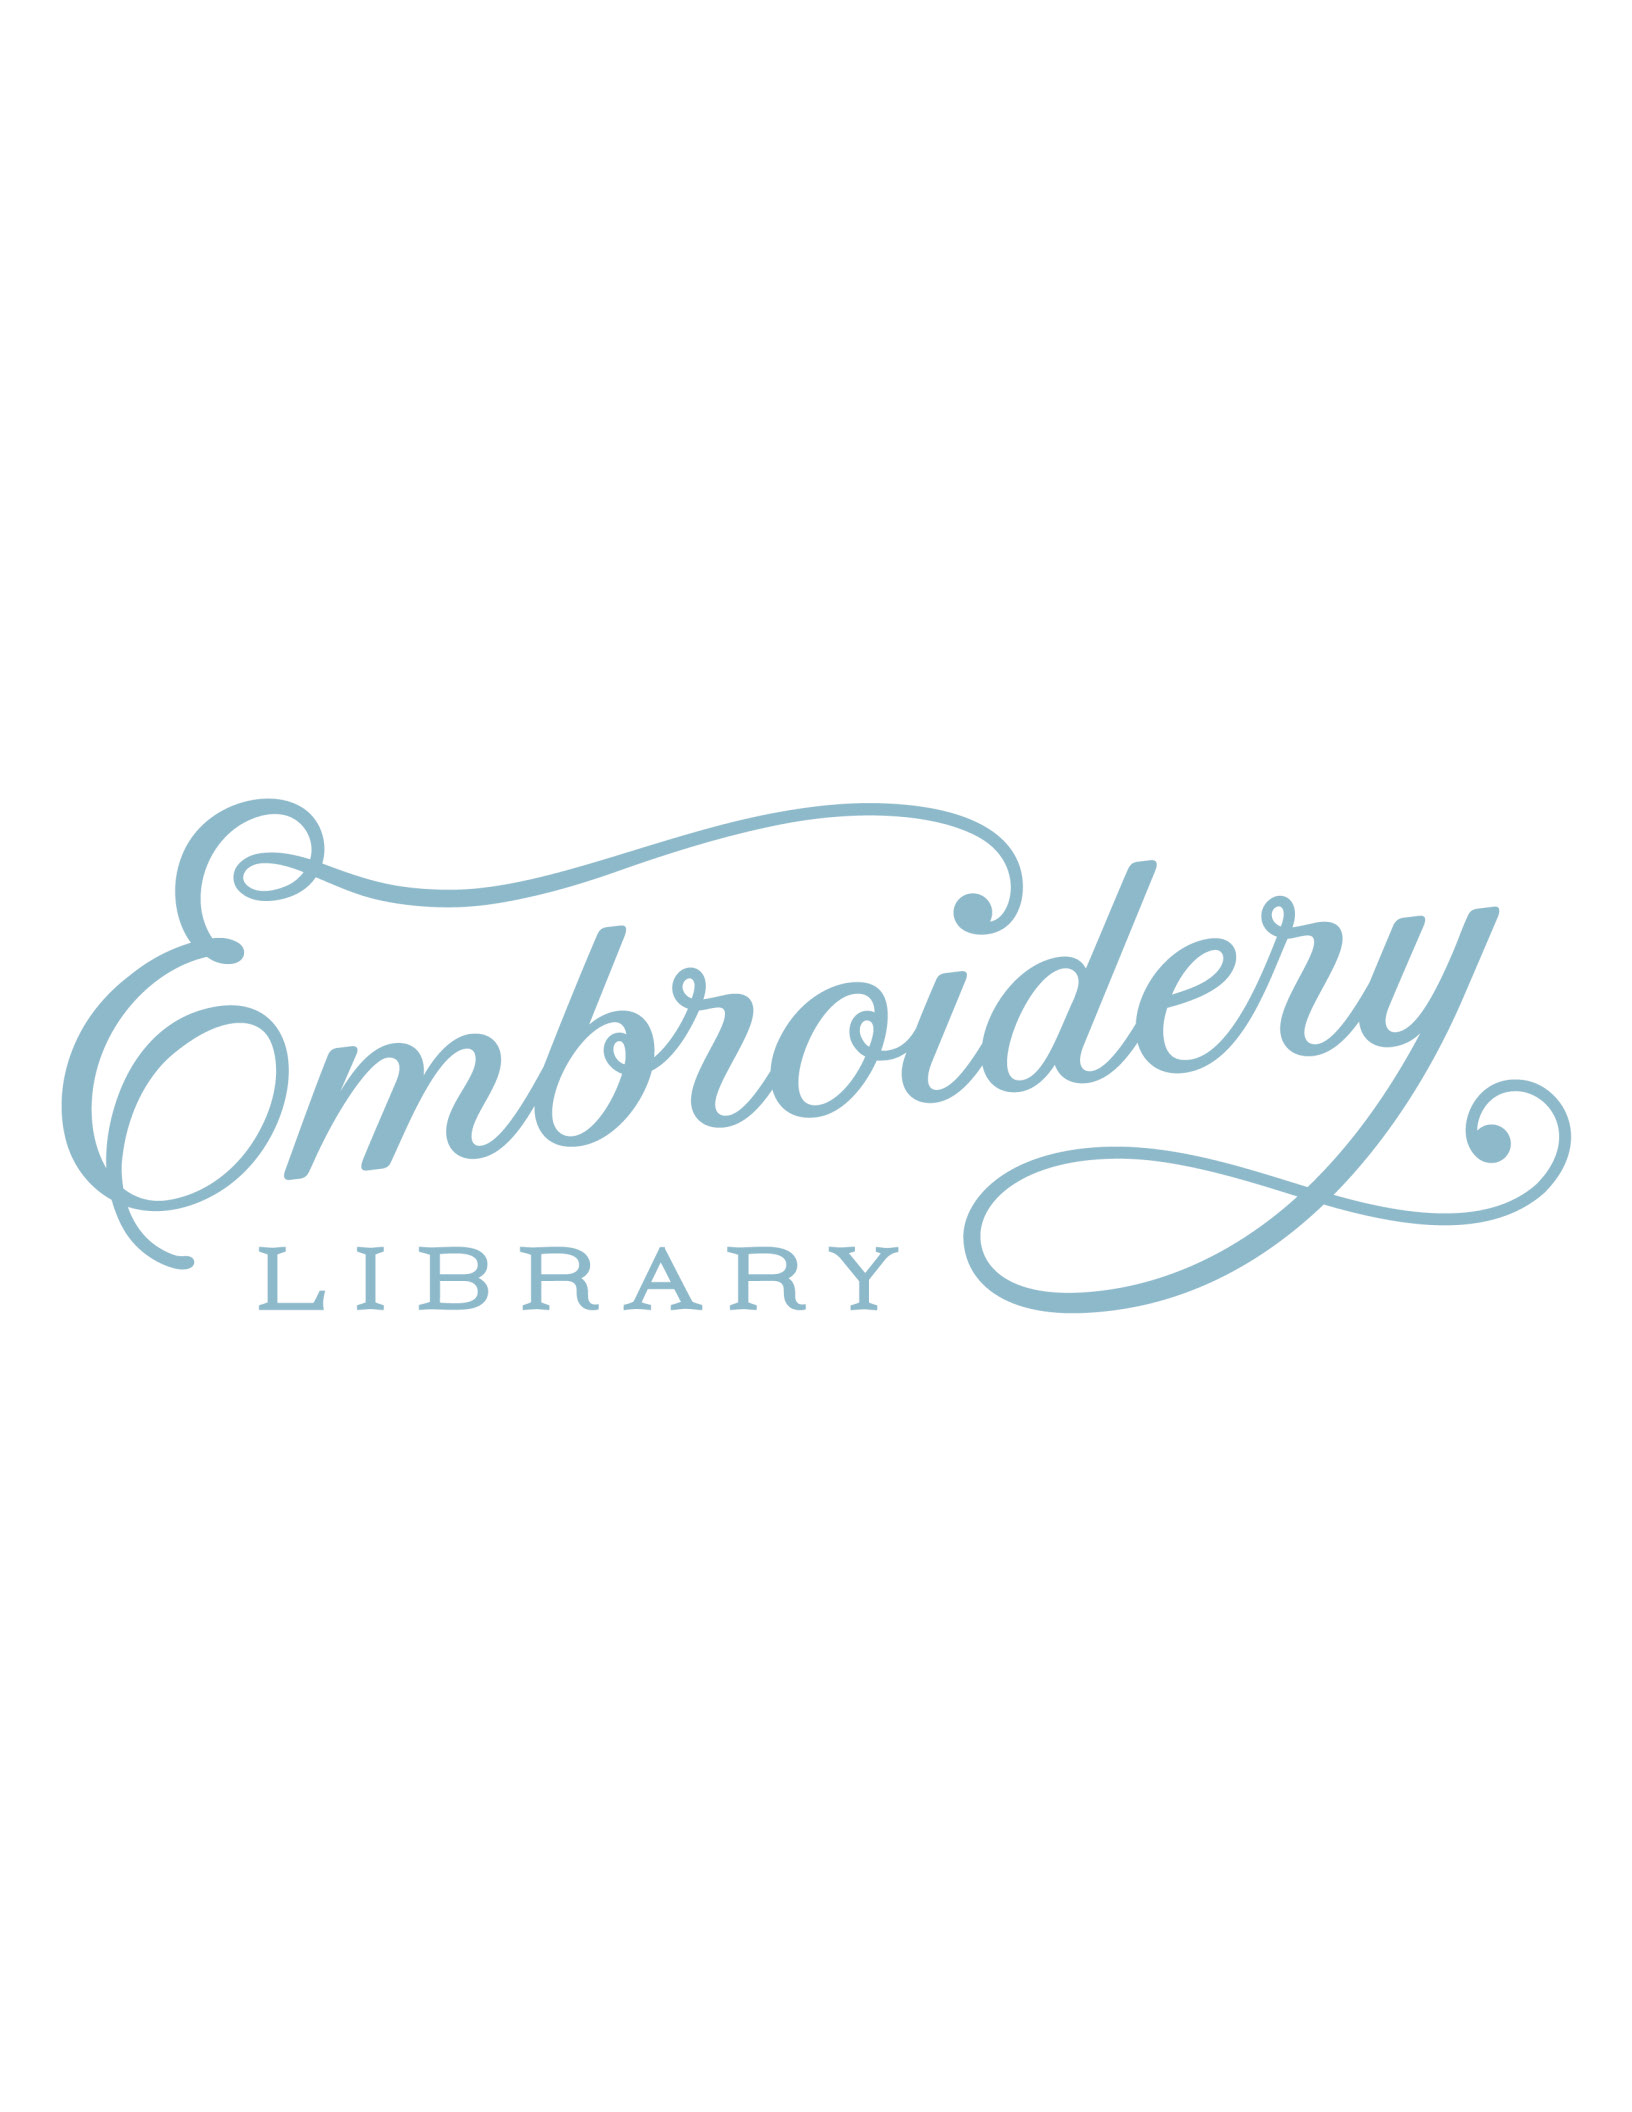 Embroidery Library image